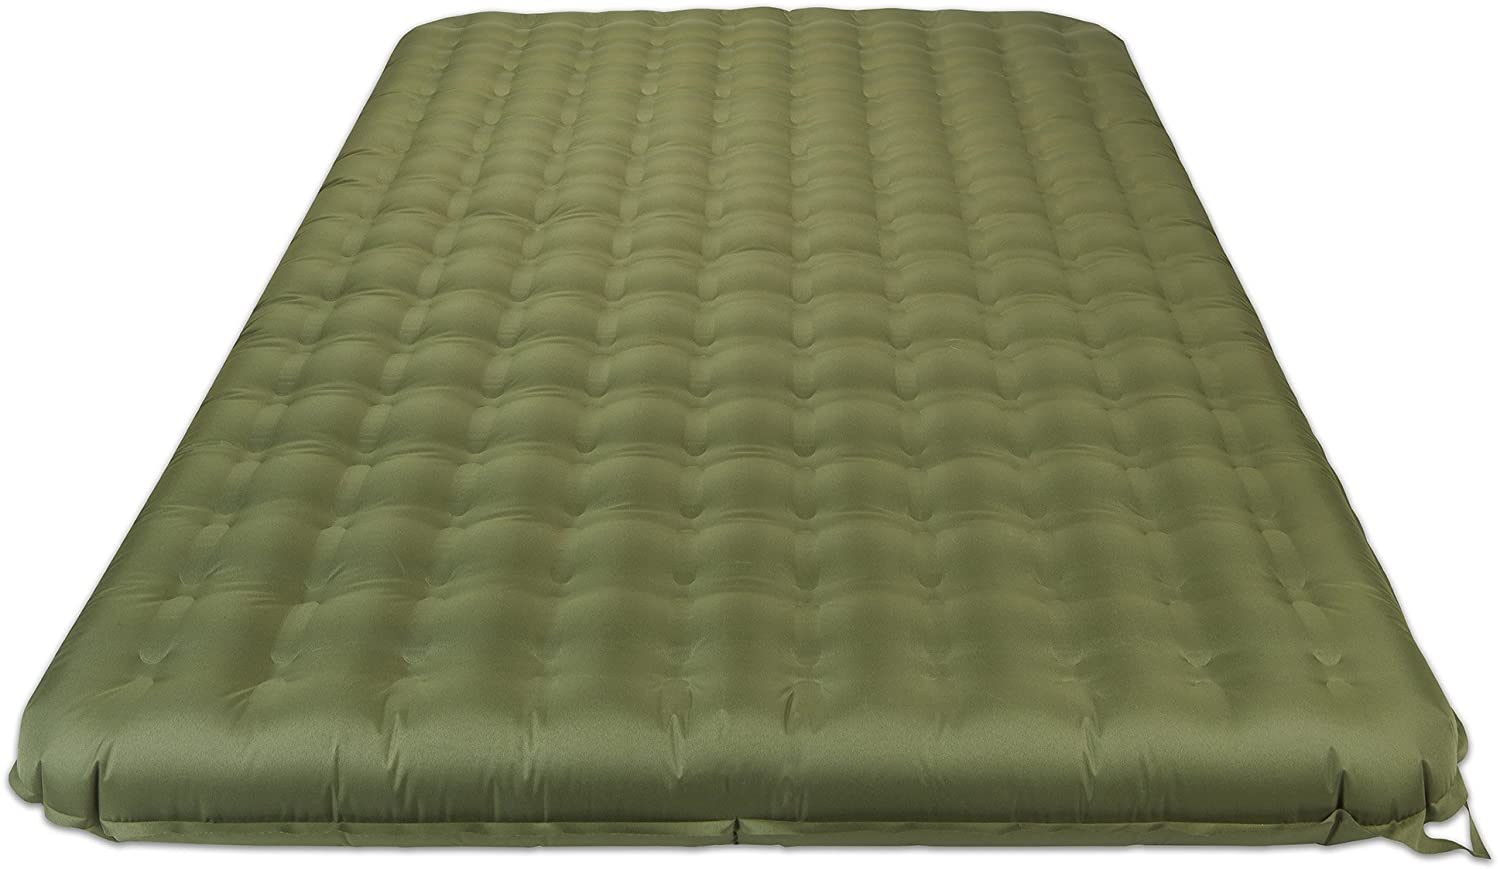 Lightspeed Outdoors 2-Person PVC-Free Air Bed with Battery Operated Pump is the best thin air mattress for camping